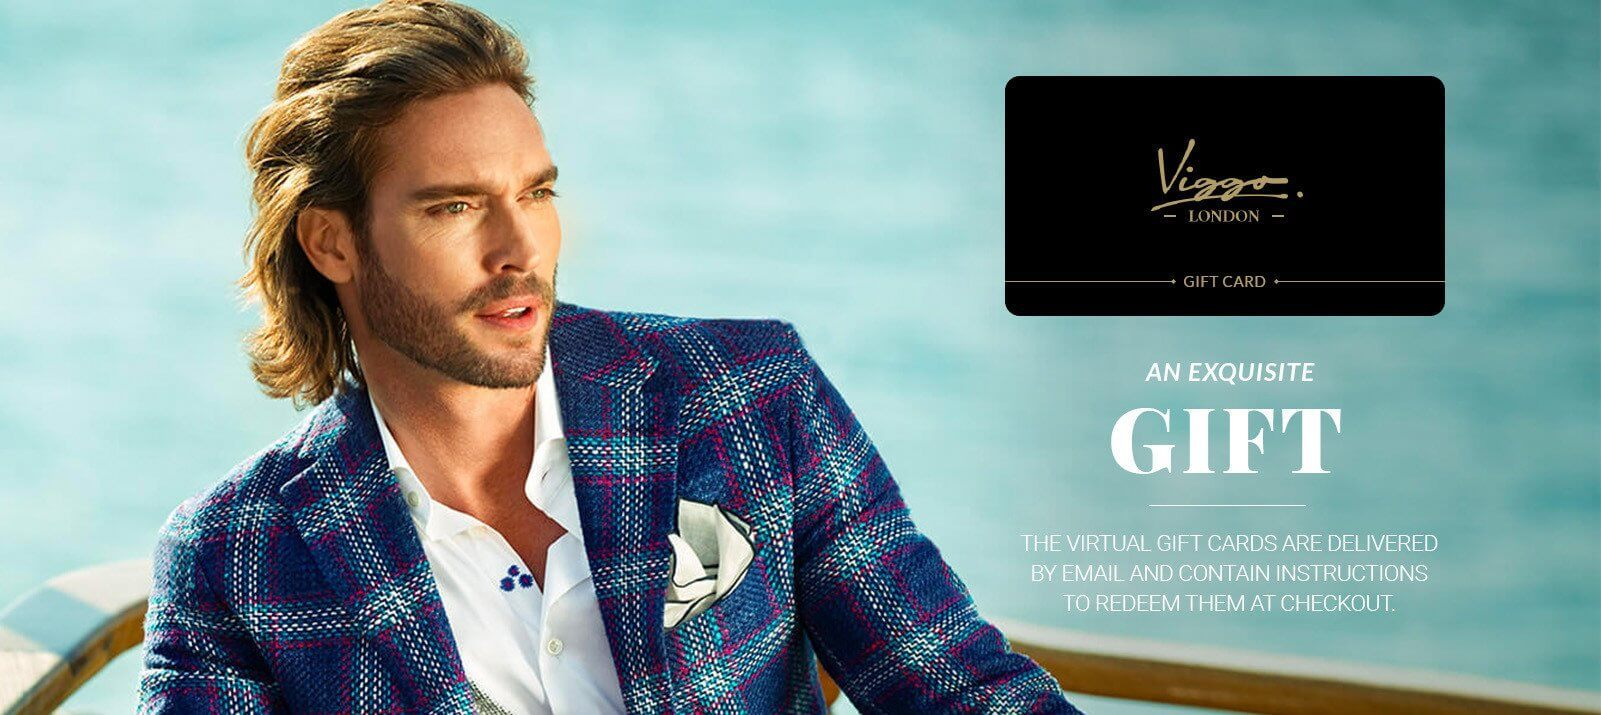 Viggo London Gift Card